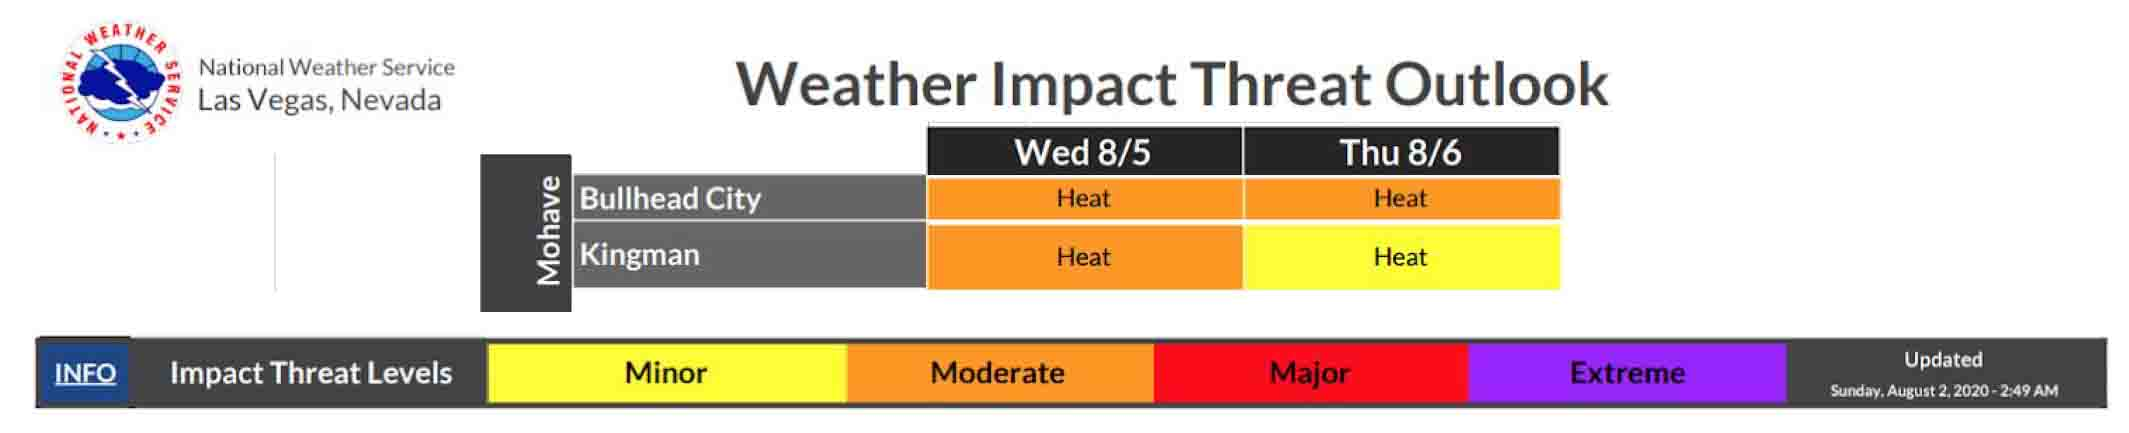 National Weather Service, Las Vegas Nevada. Weather Impact Threat Outlook. Mohave Bullhead City: Wed 8/5 and Thu 8/6 = Moderate Heat. Kingman: Wed 8/5= moderate heat, and Thu 8/6= Minor heat. Info: Impact Threat Levels. Minor, Moderate, Major, Extreme. Updated Sunday, August 2, 2020, 2:49 a.m.